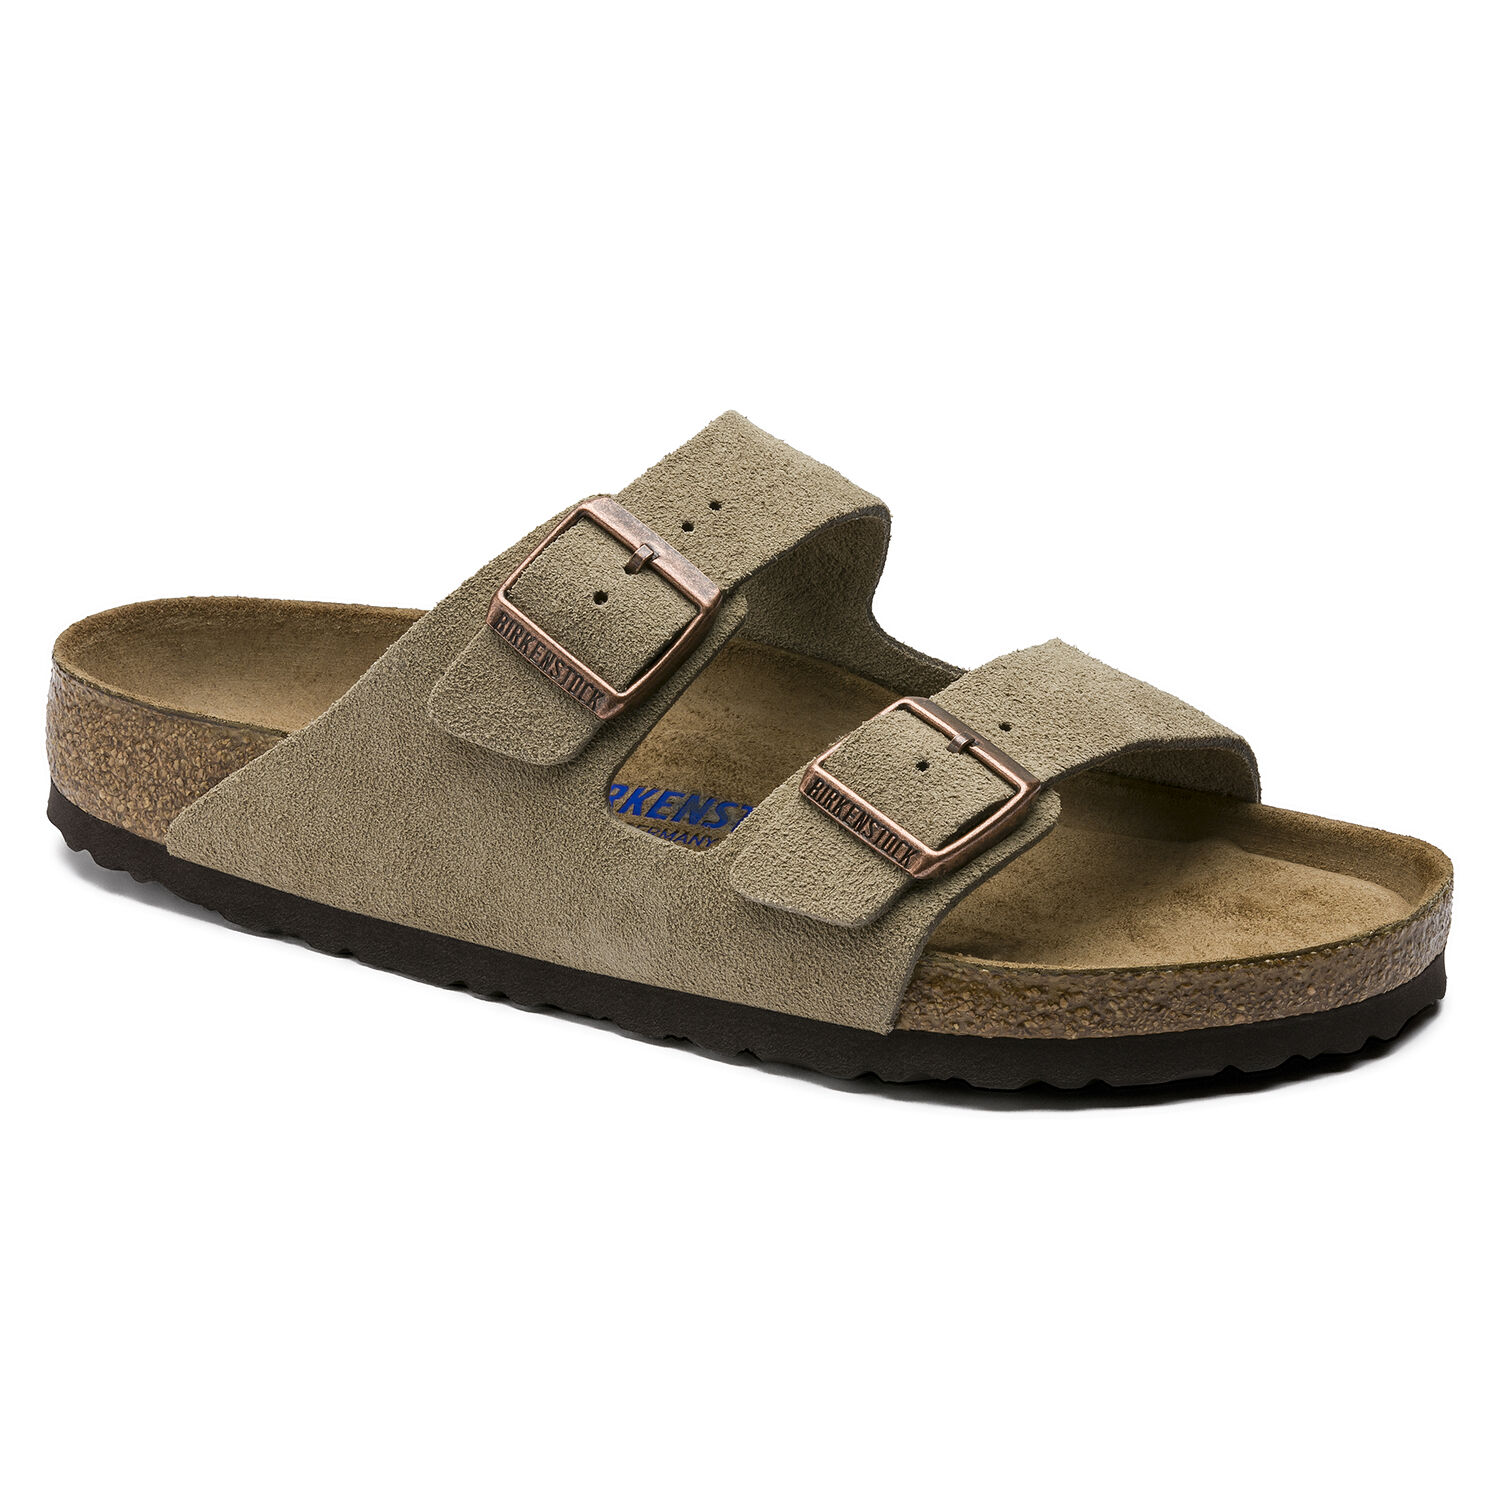 839bc991d Arizona Suede Leather Soft Footbed Taupe